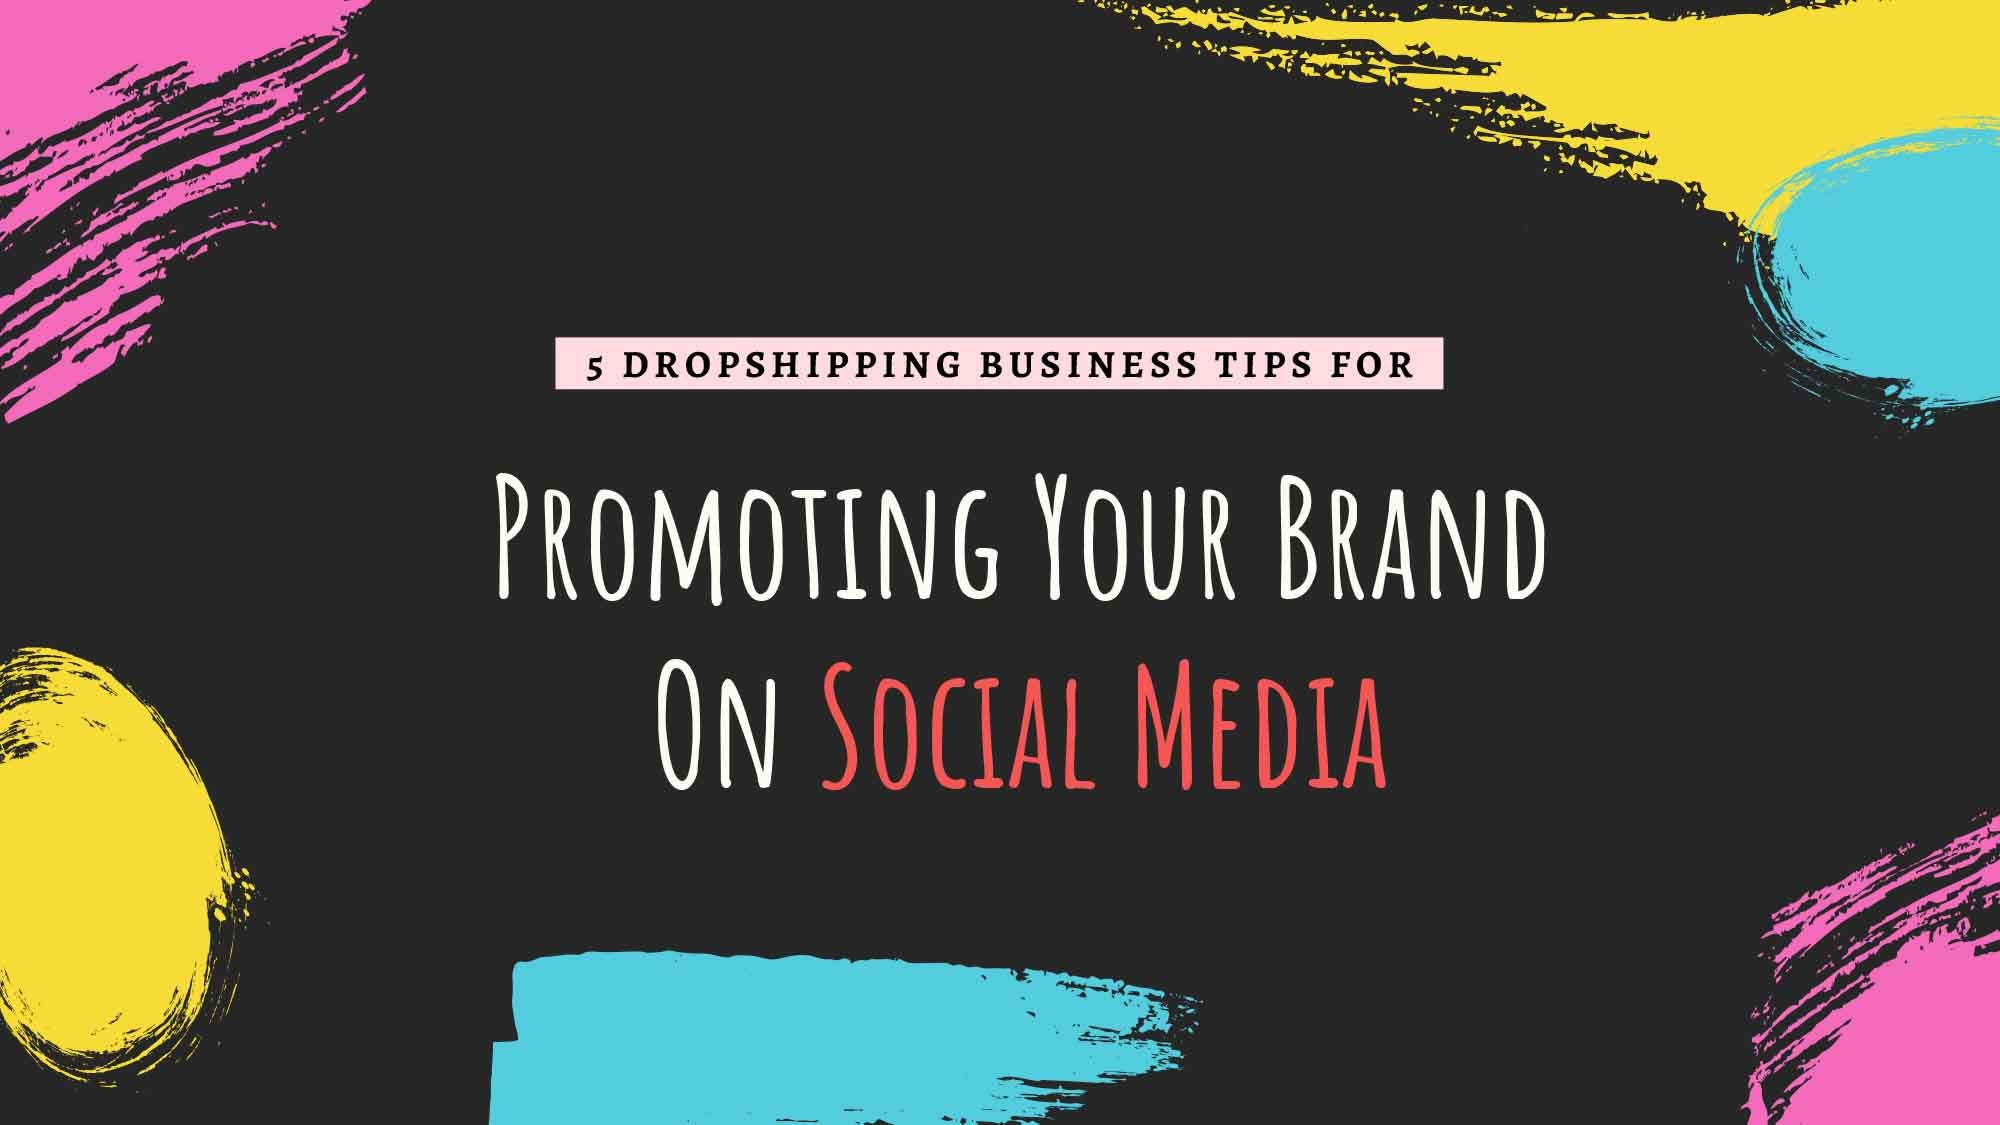 Follow These Tips To Promote Your Dropshipping Business On Social Media in 2021!